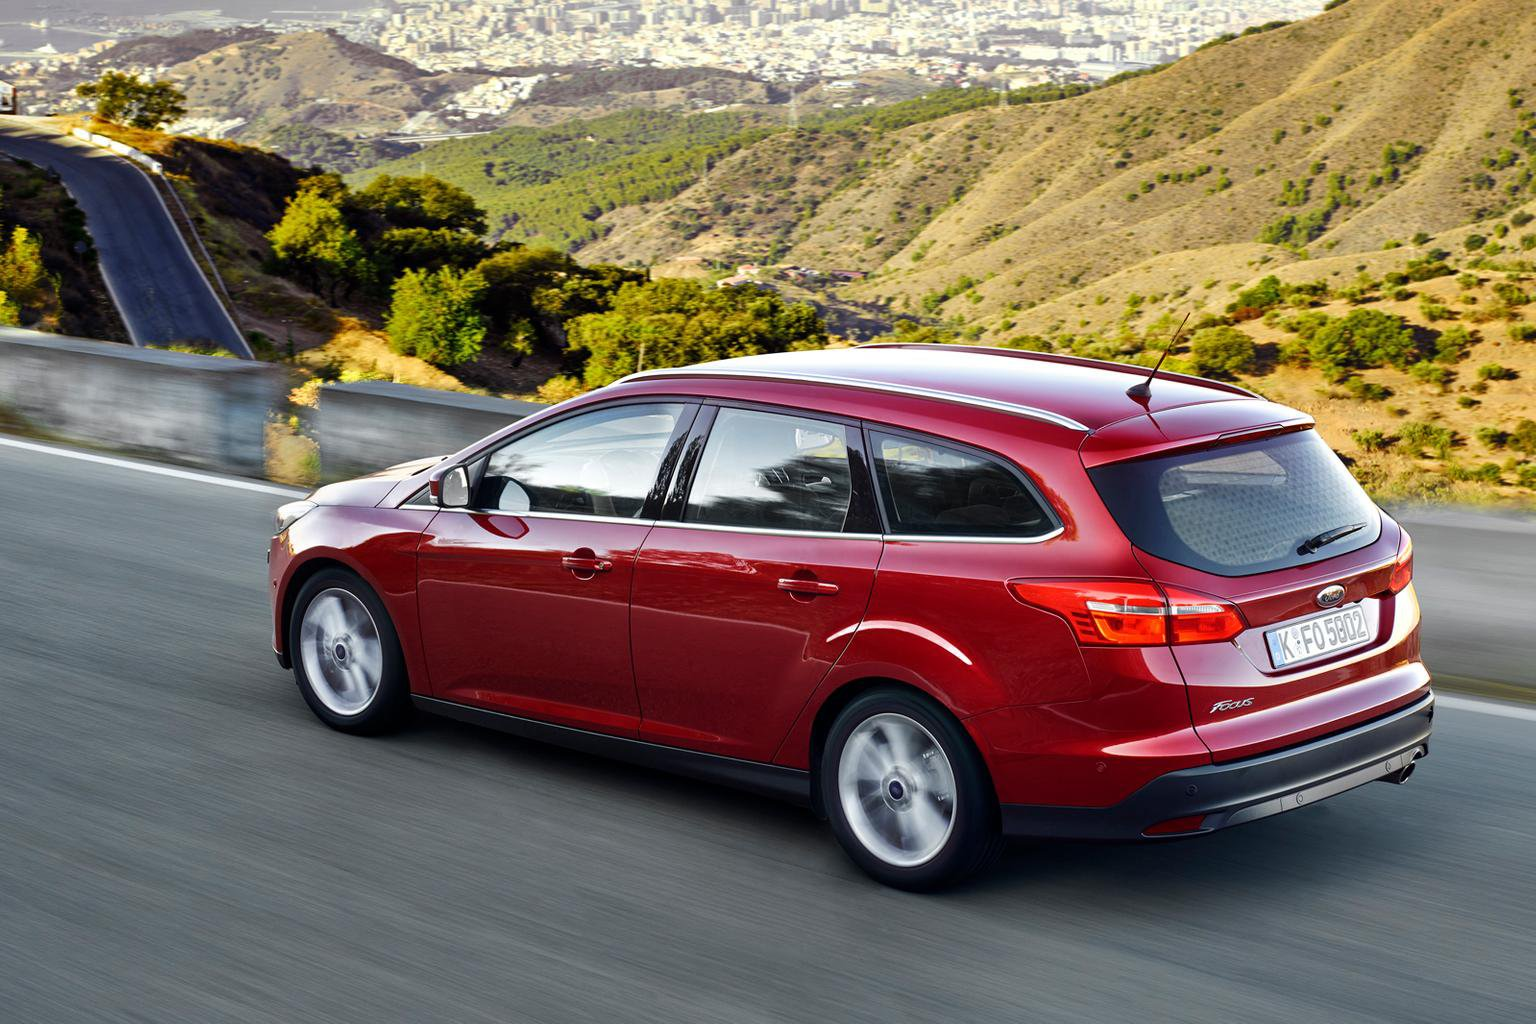 2014 Ford Focus Estate review